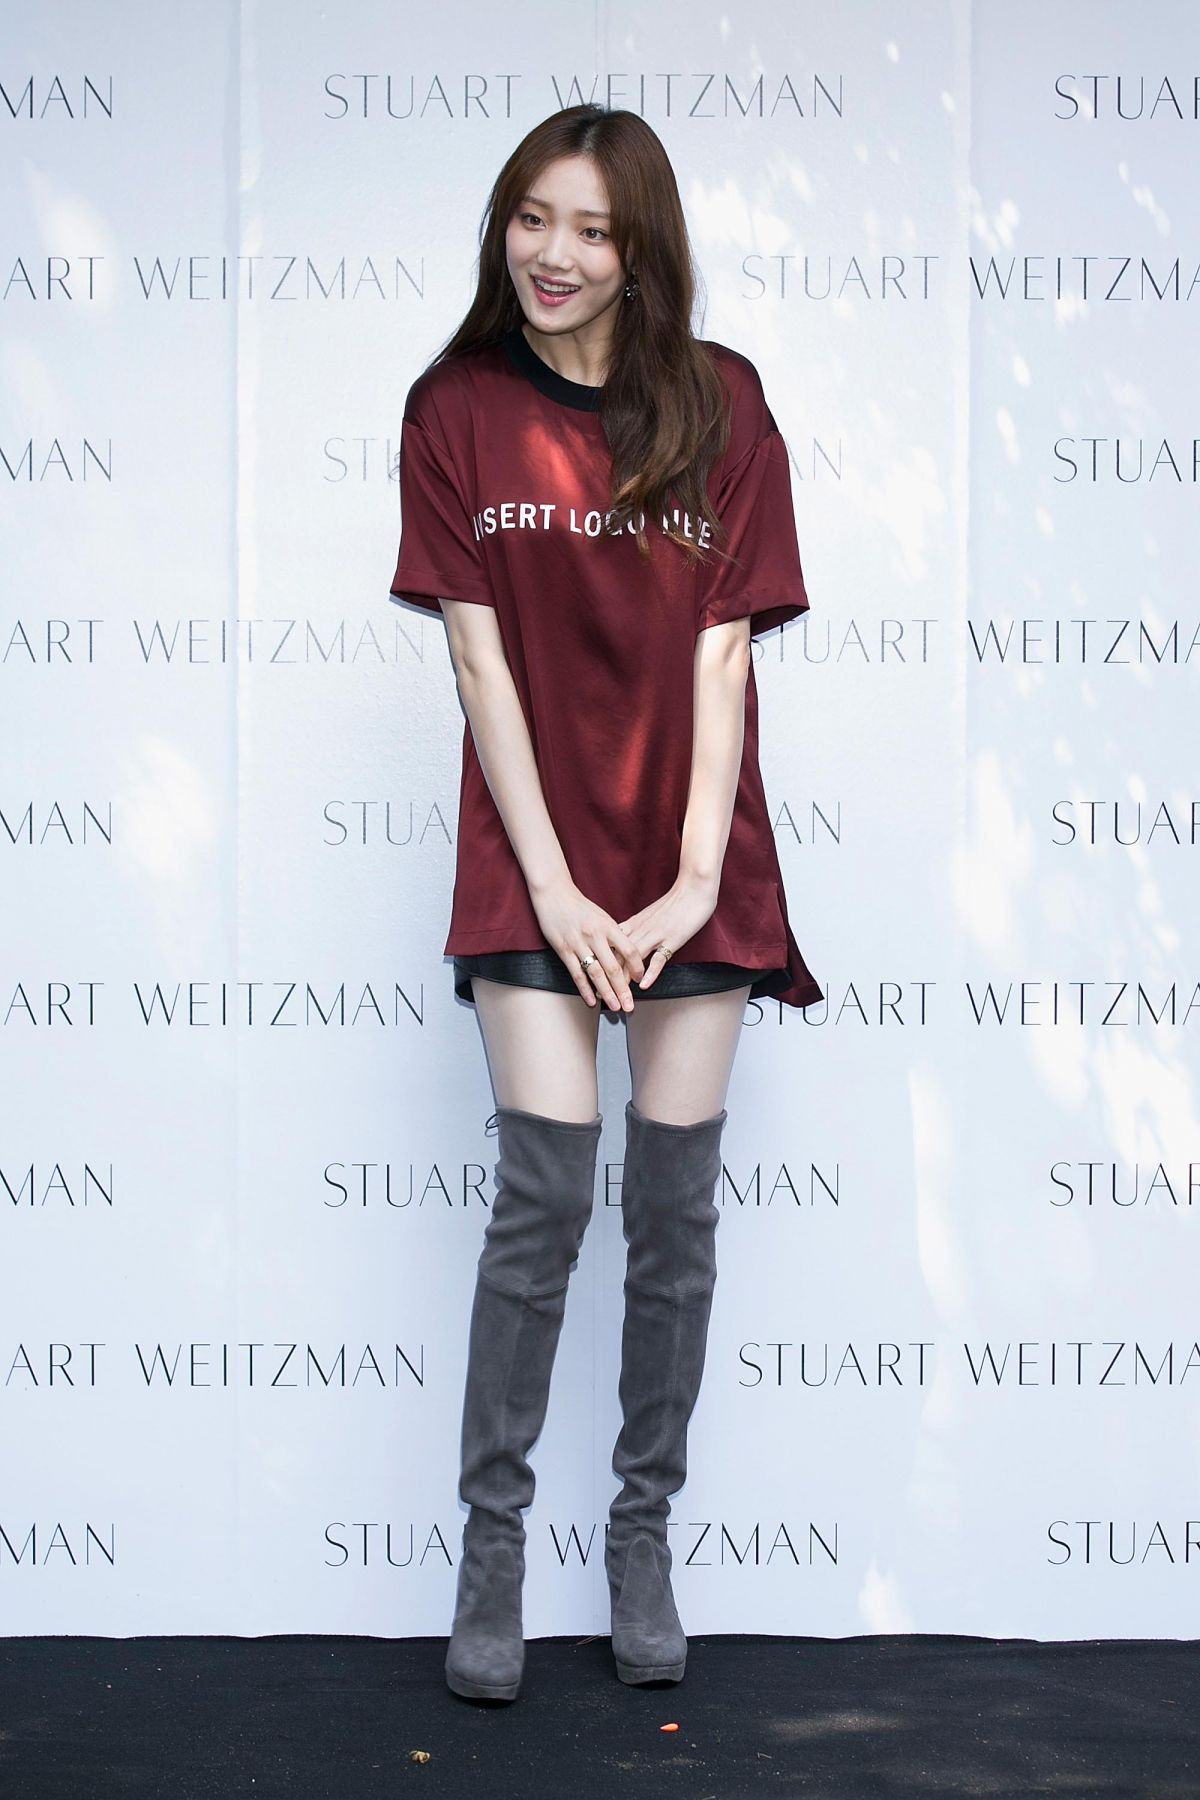 LEE SUNG-KYUNG at Stuart Weitzman 2016 Fall/Winter Presentation in Seoul 09/01/2016